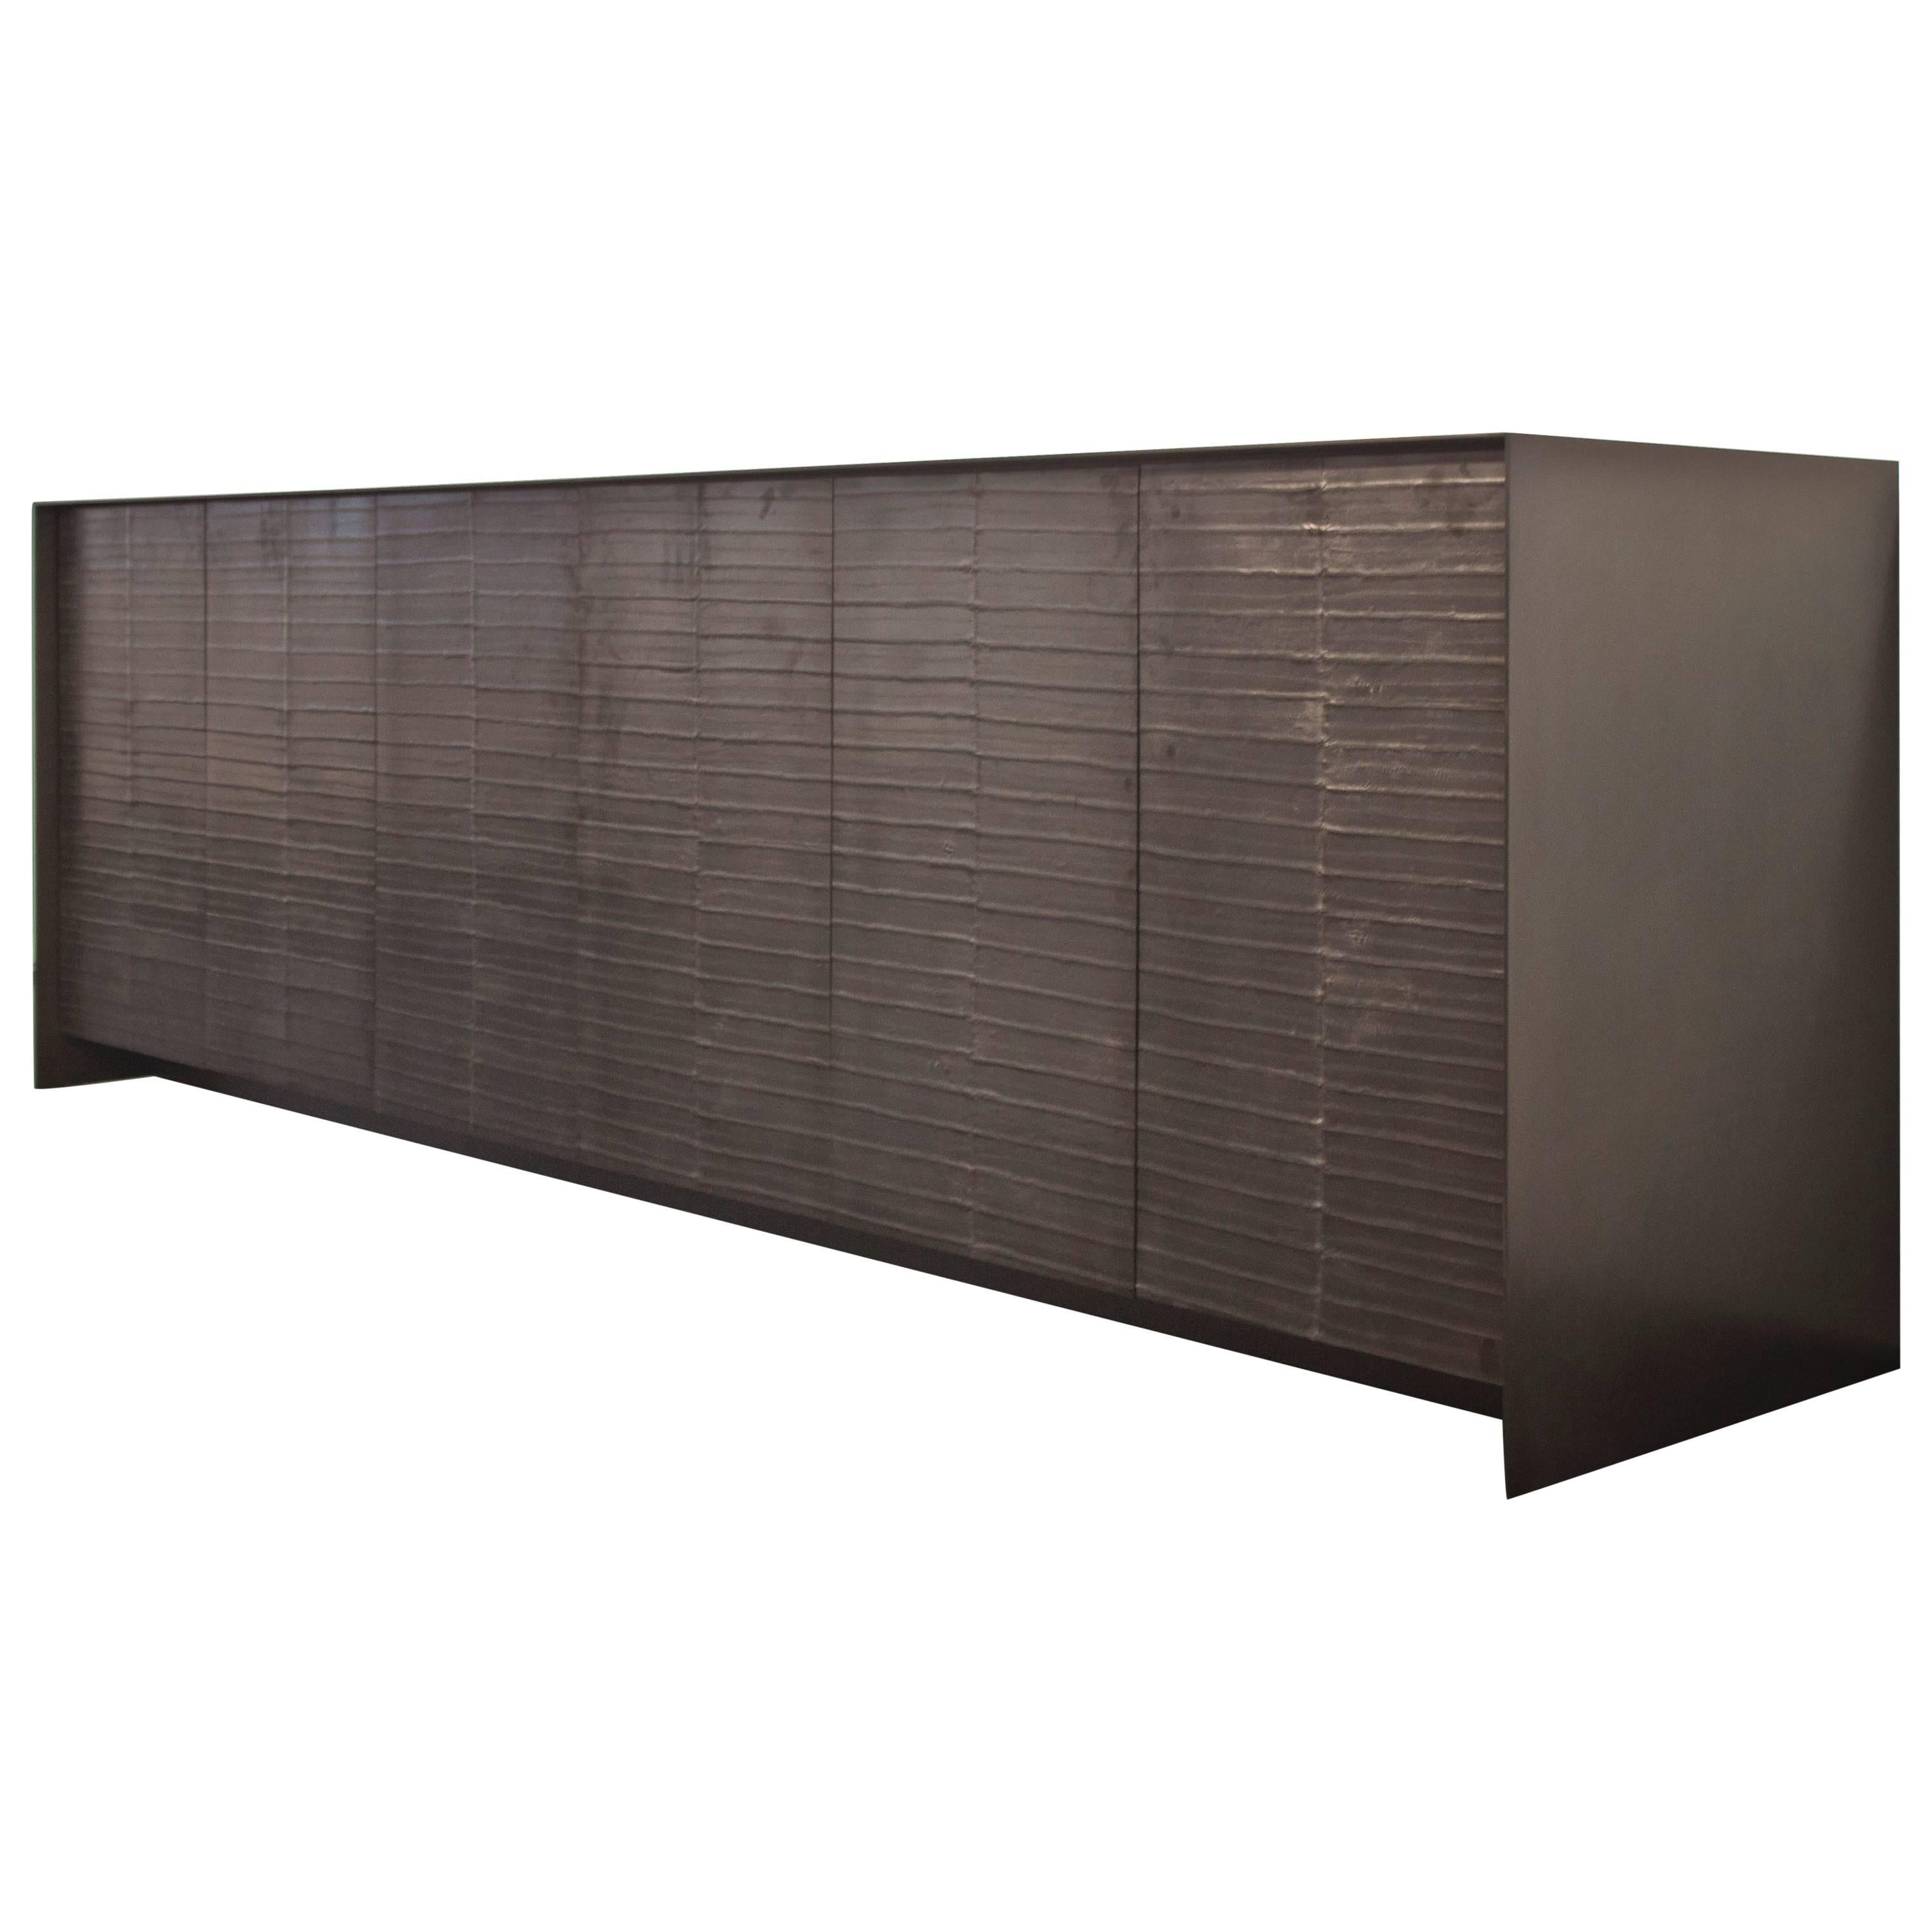 Sina Eelskin Graphite Credenza I Customizable For Sale At 1Stdibs